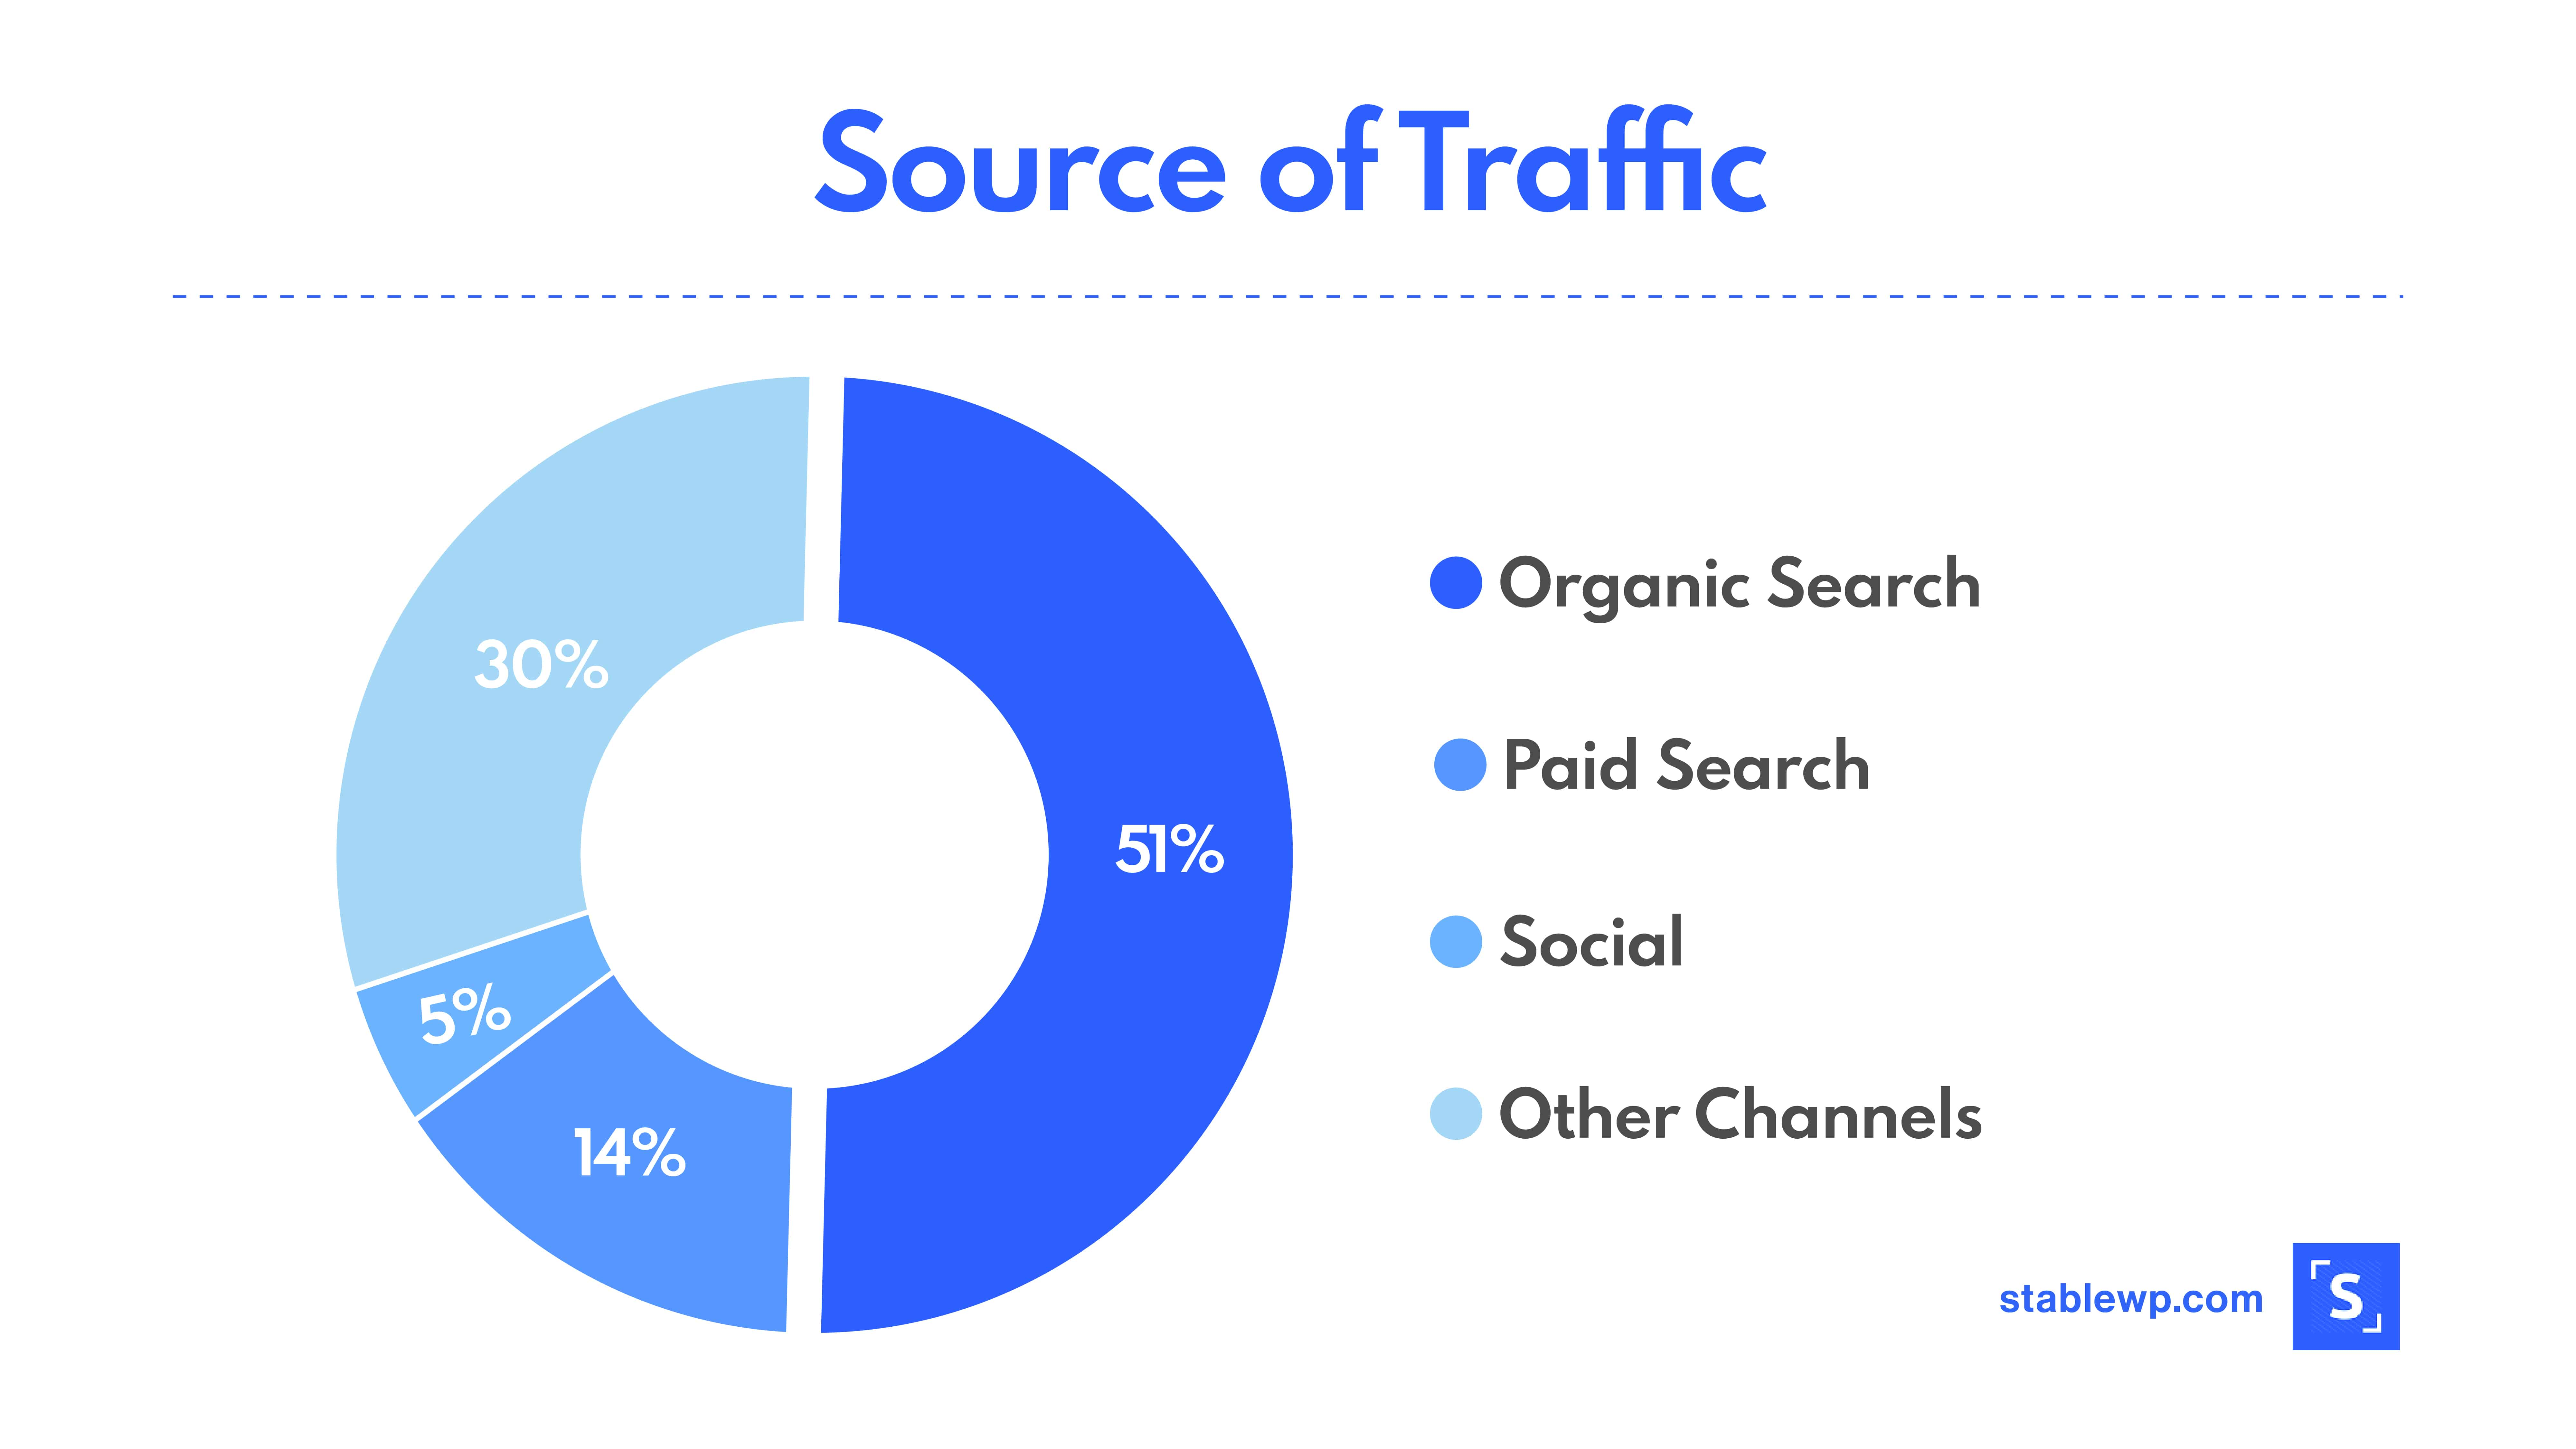 Pie chart showing organic search as top traffic source with 51%, followed by paid source and social media with 14 and 5% respectivelly